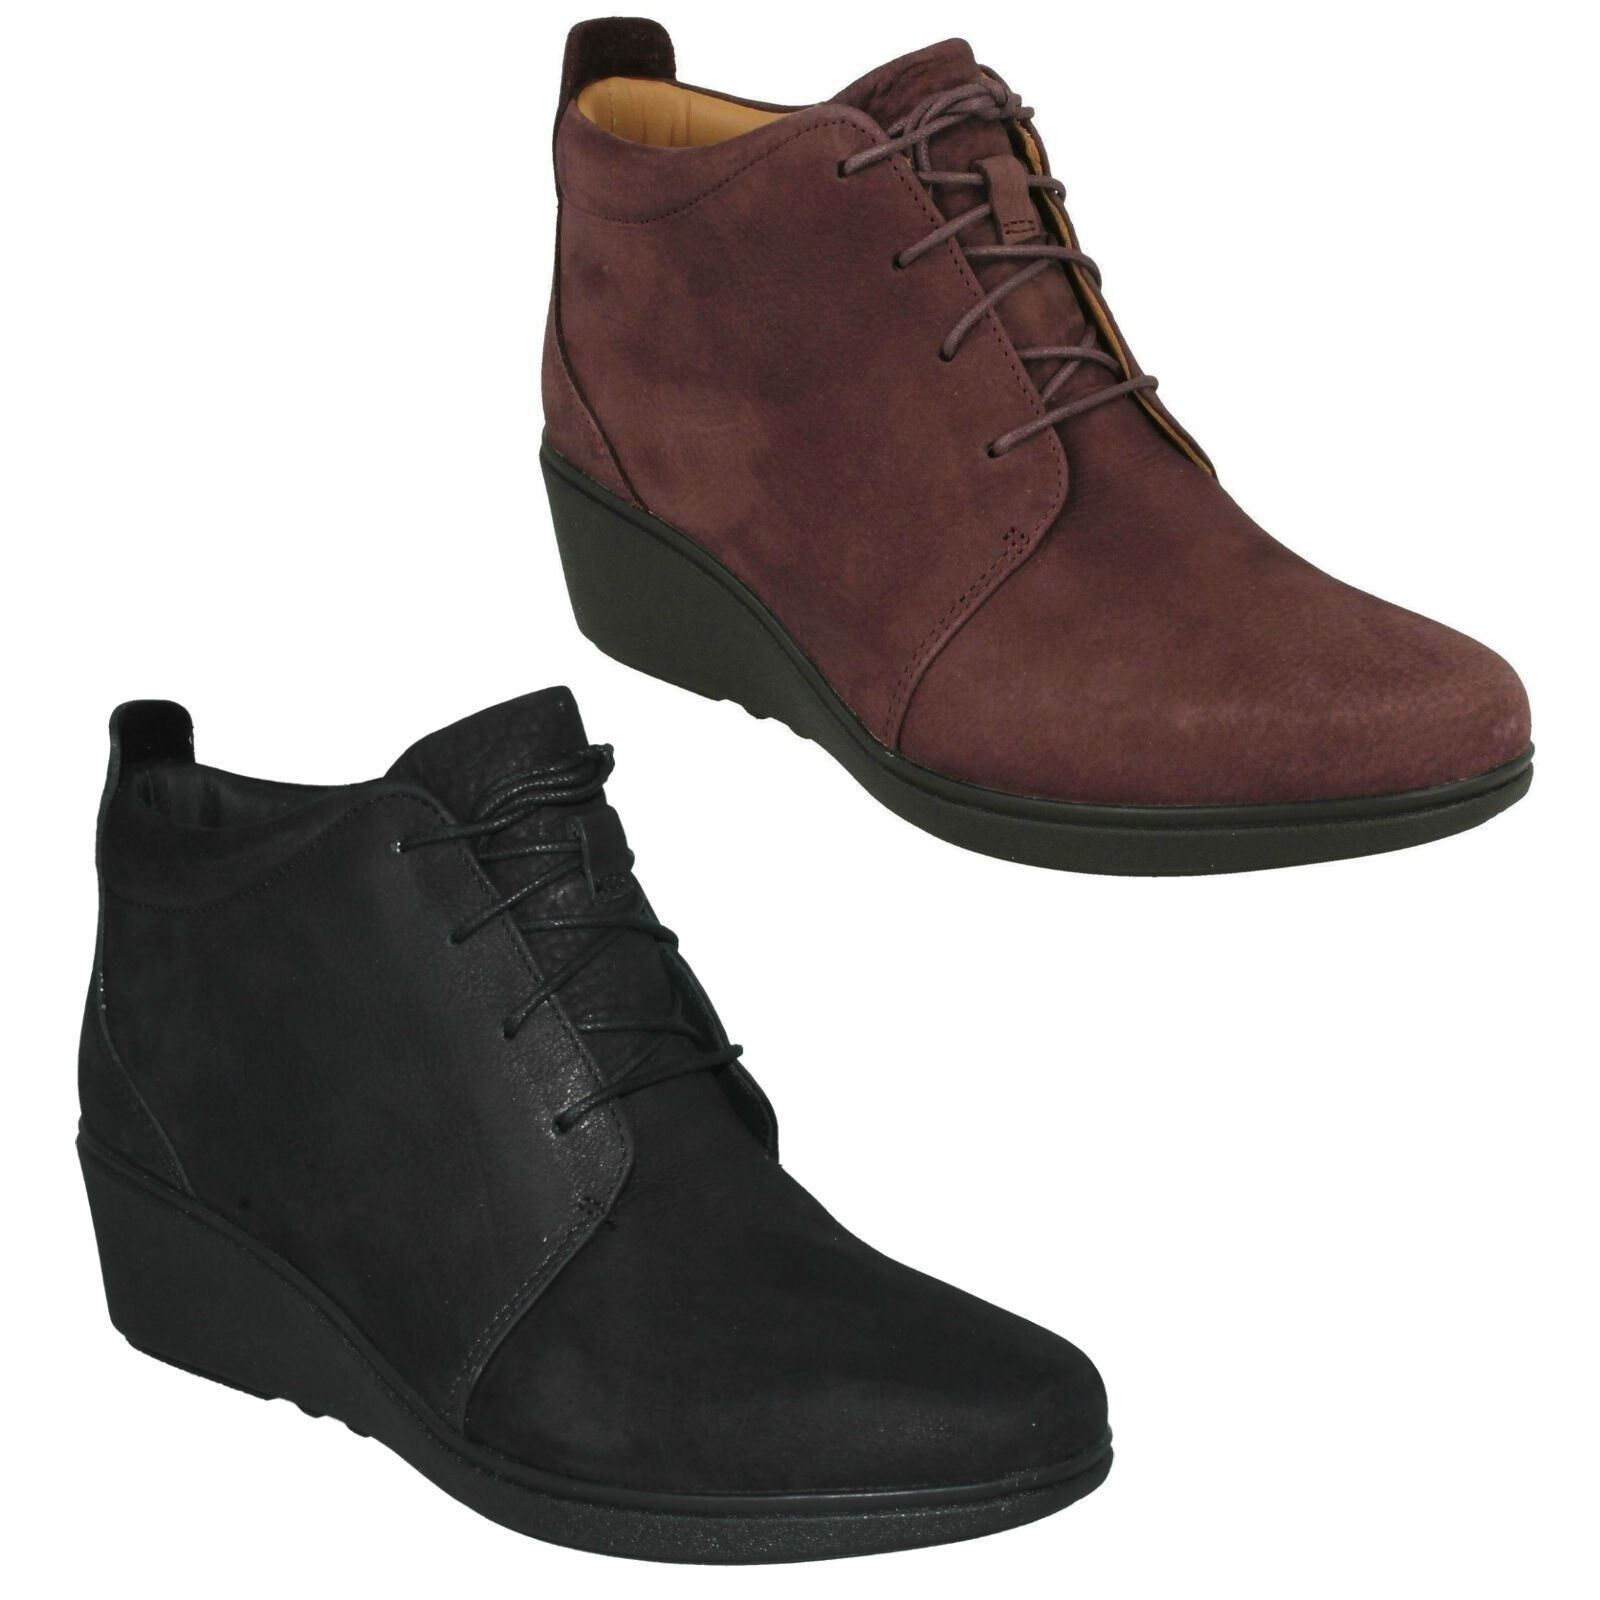 LADIES CLARKS UNSTRUCTURED UN NUBUCK LACES CASUAL ANKLE BOOTS SHOES UN UNSTRUCTURED TALLARA EVA 979f42